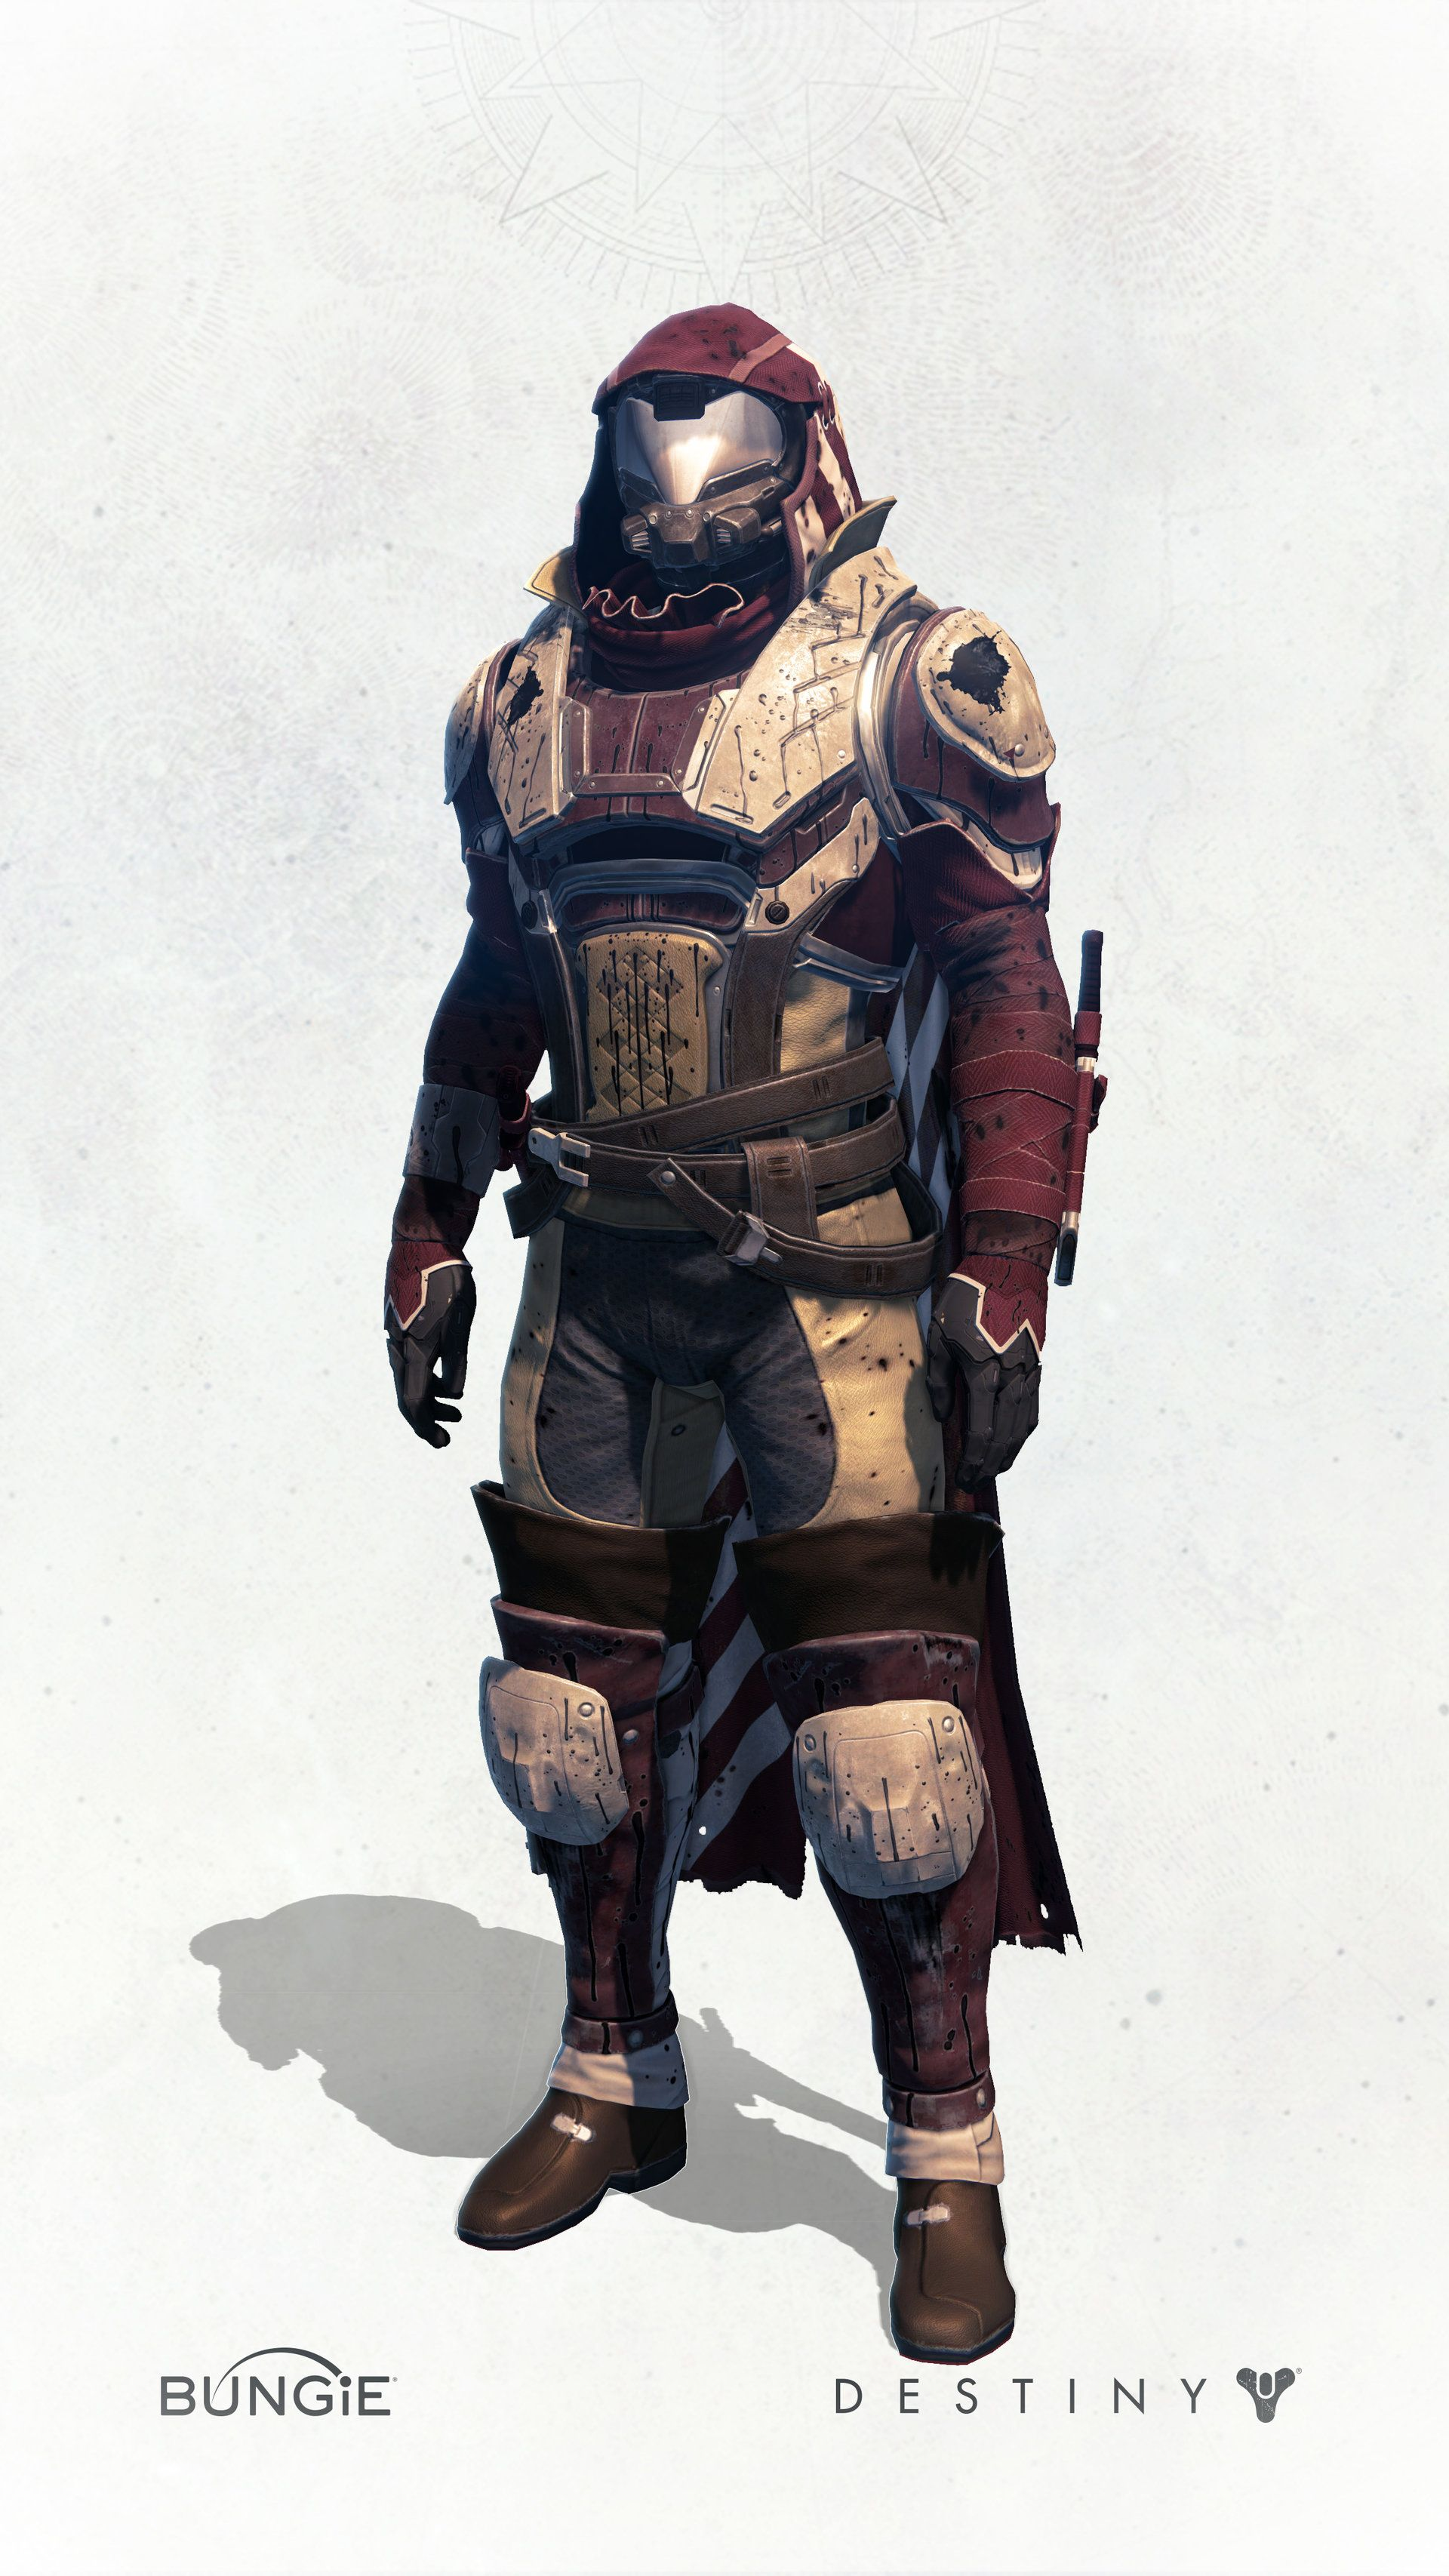 ArtStation - Destiny - House of Wolves - Hunter Gear, Ian McIntosh